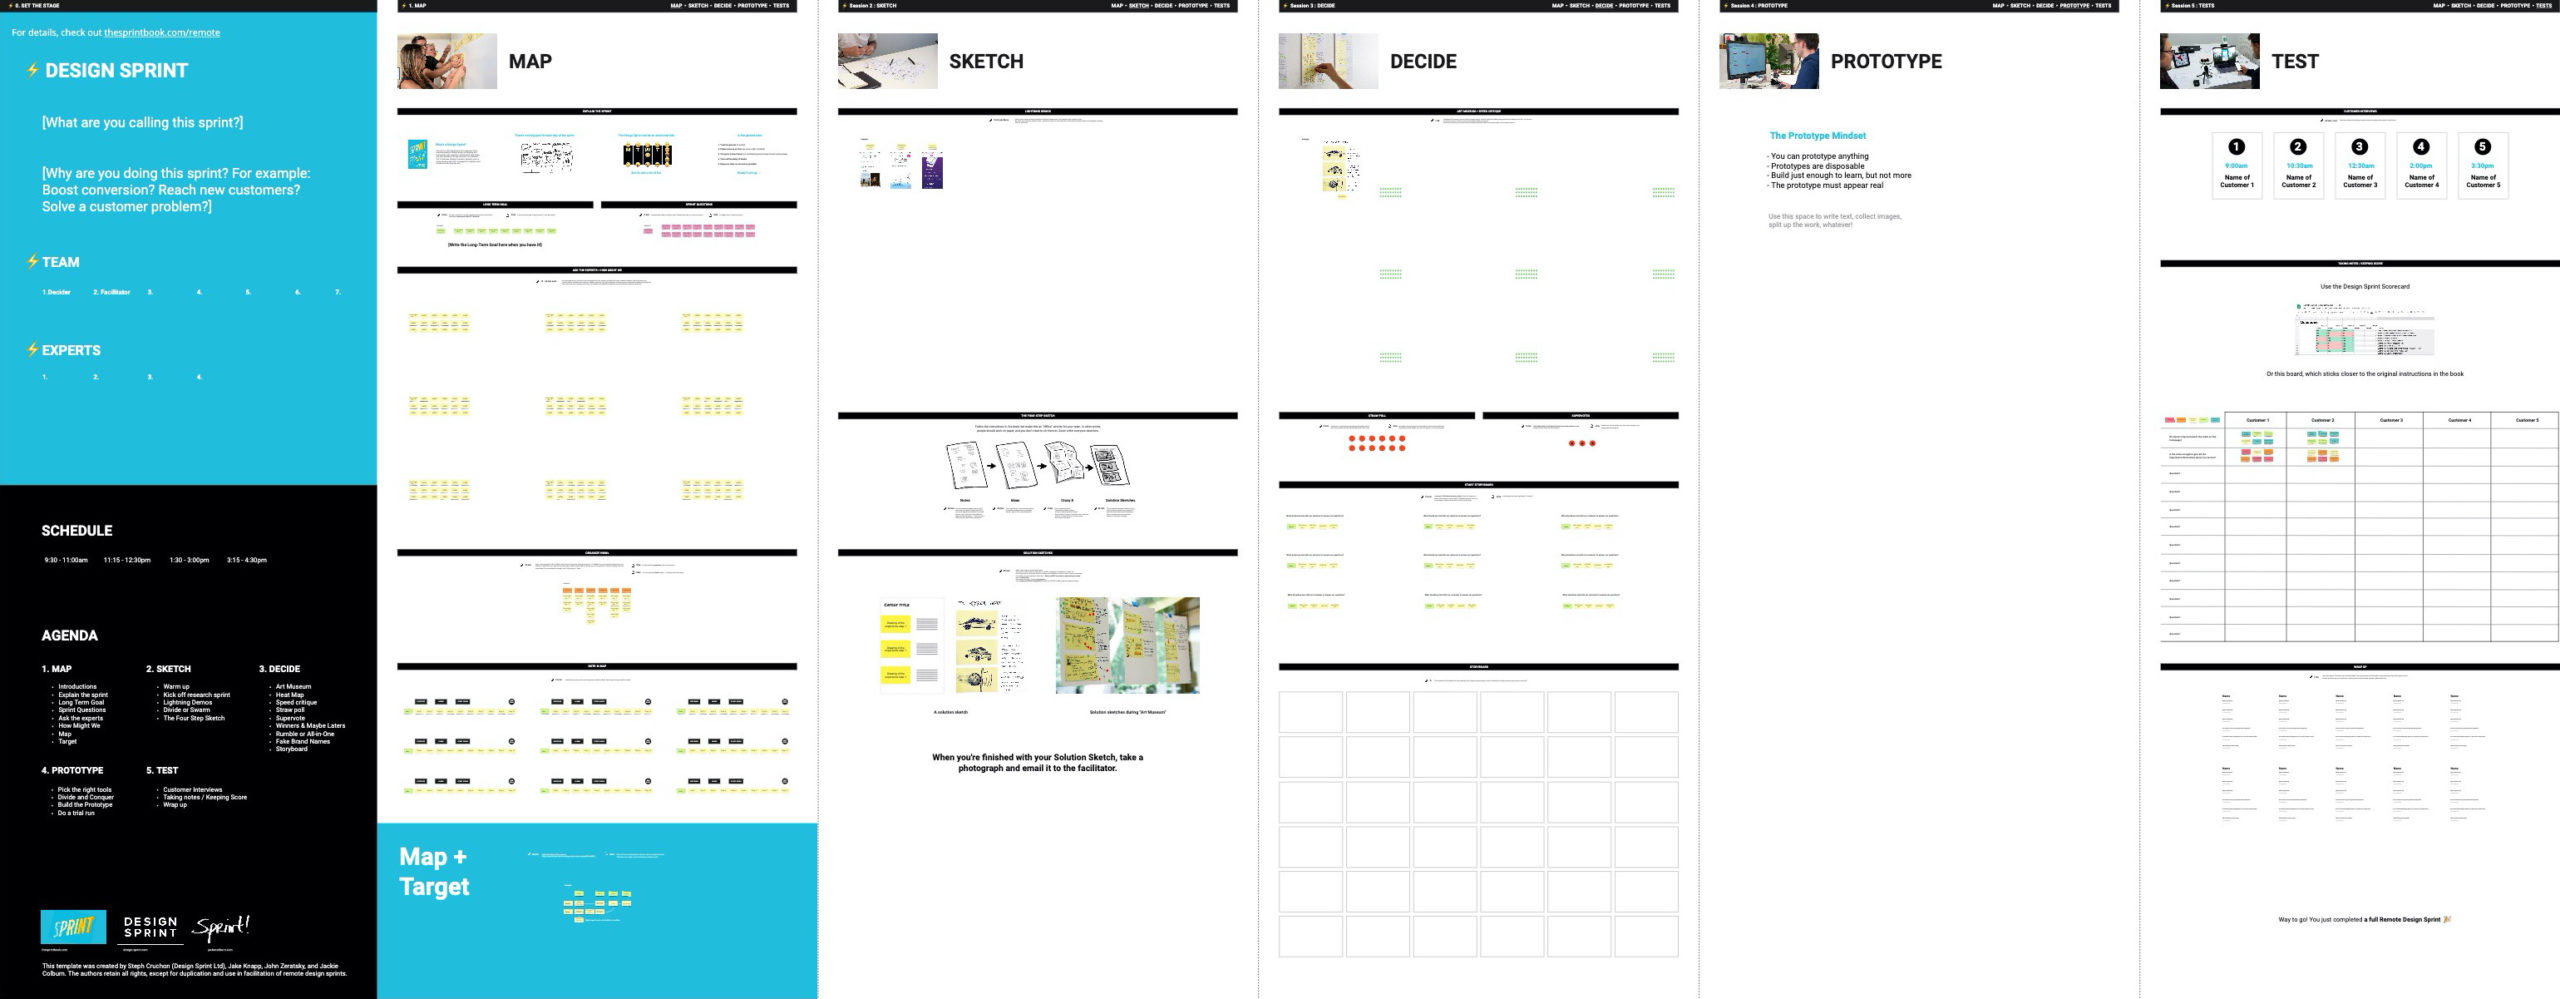 The official Design Sprint template